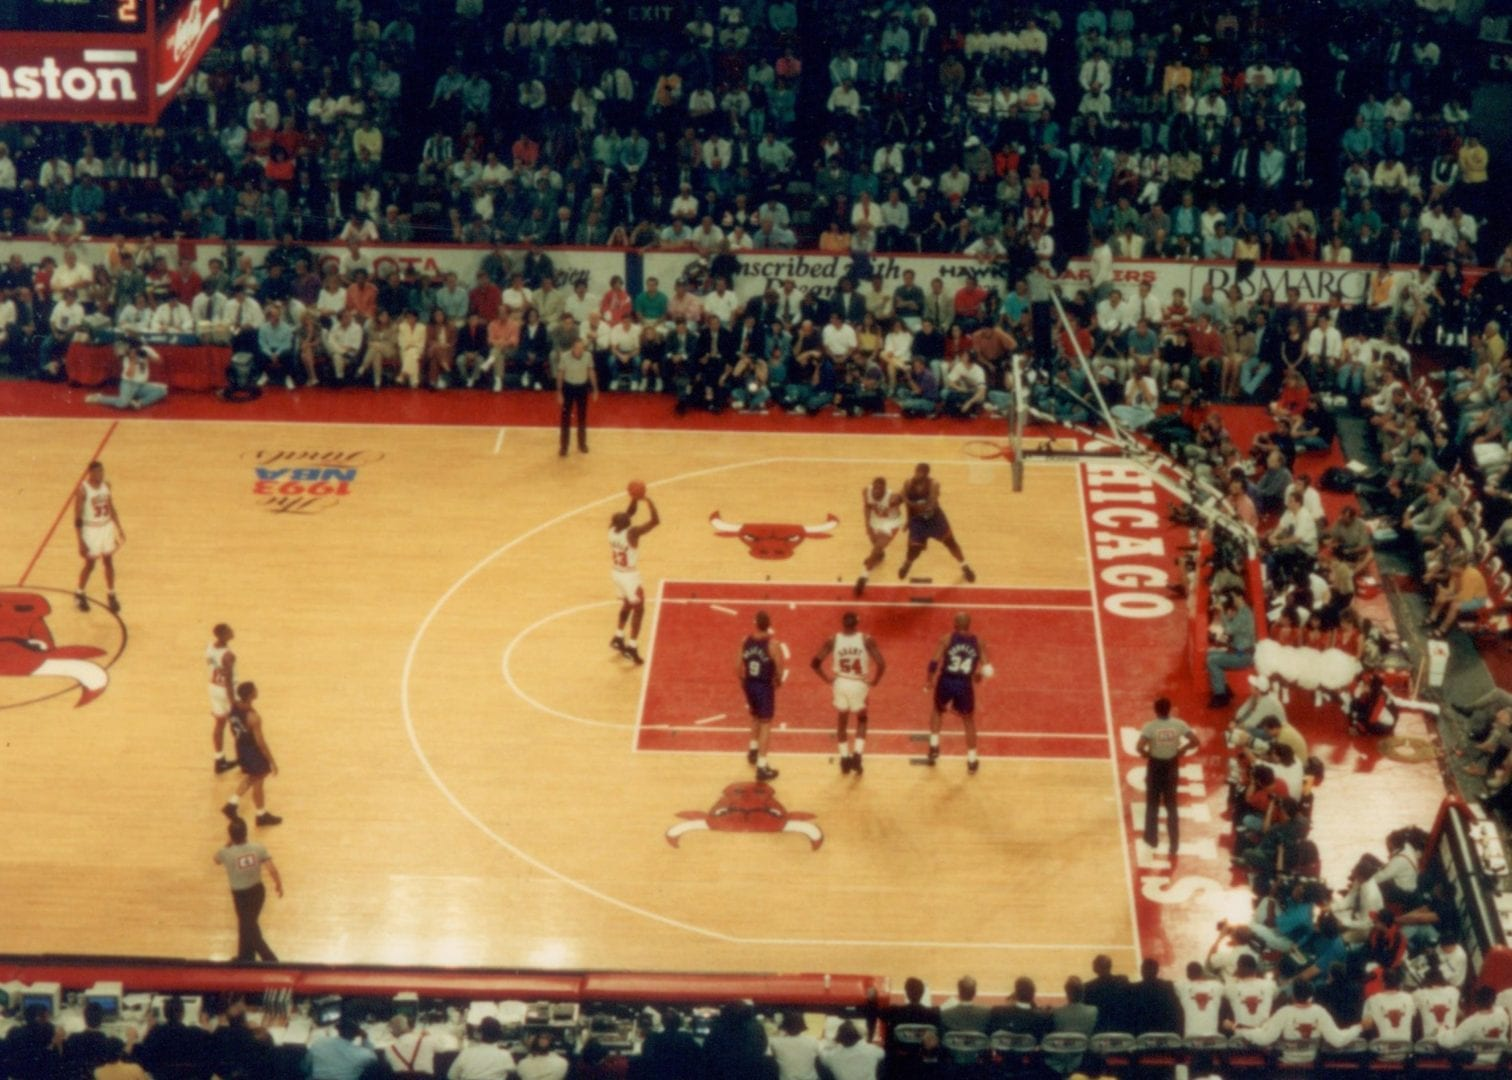 Michael Jordan doing a free throw from a top view